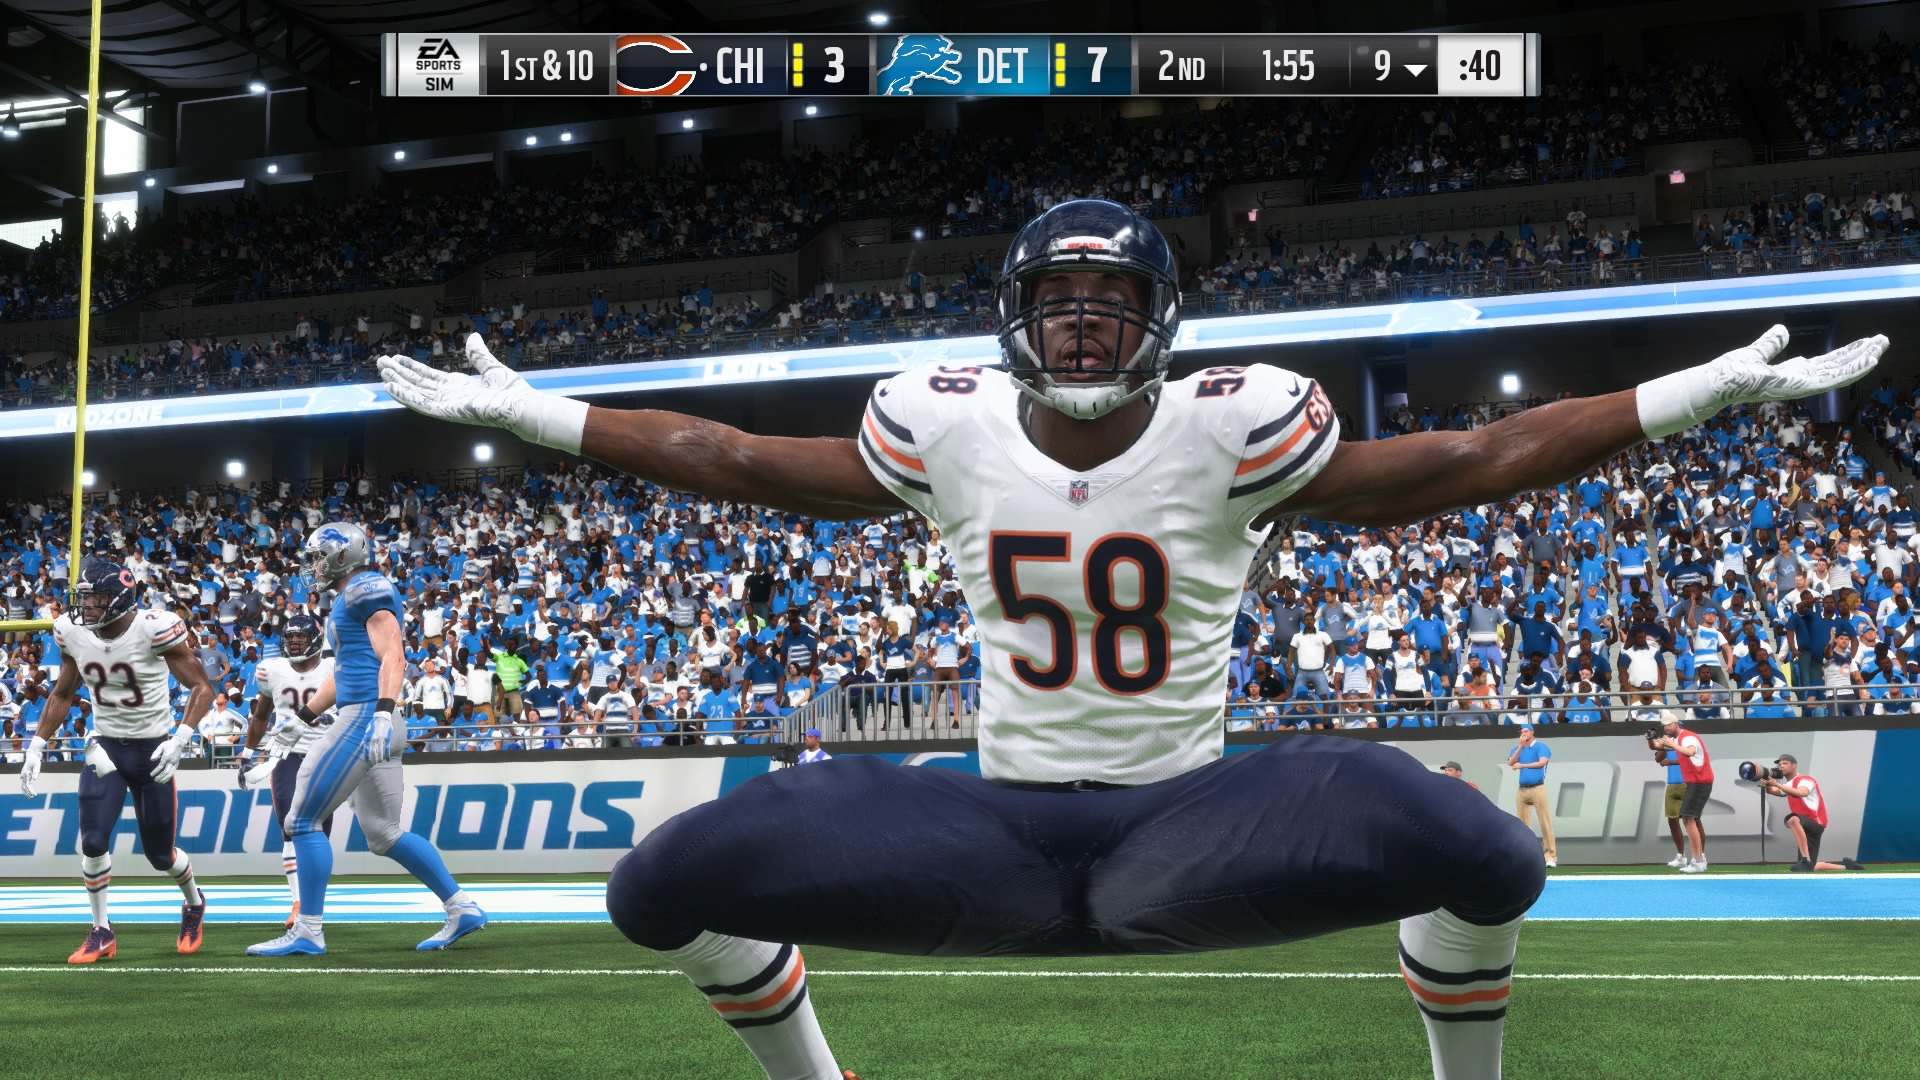 Madden 19 September Title Update and Patch Notes Released by EA